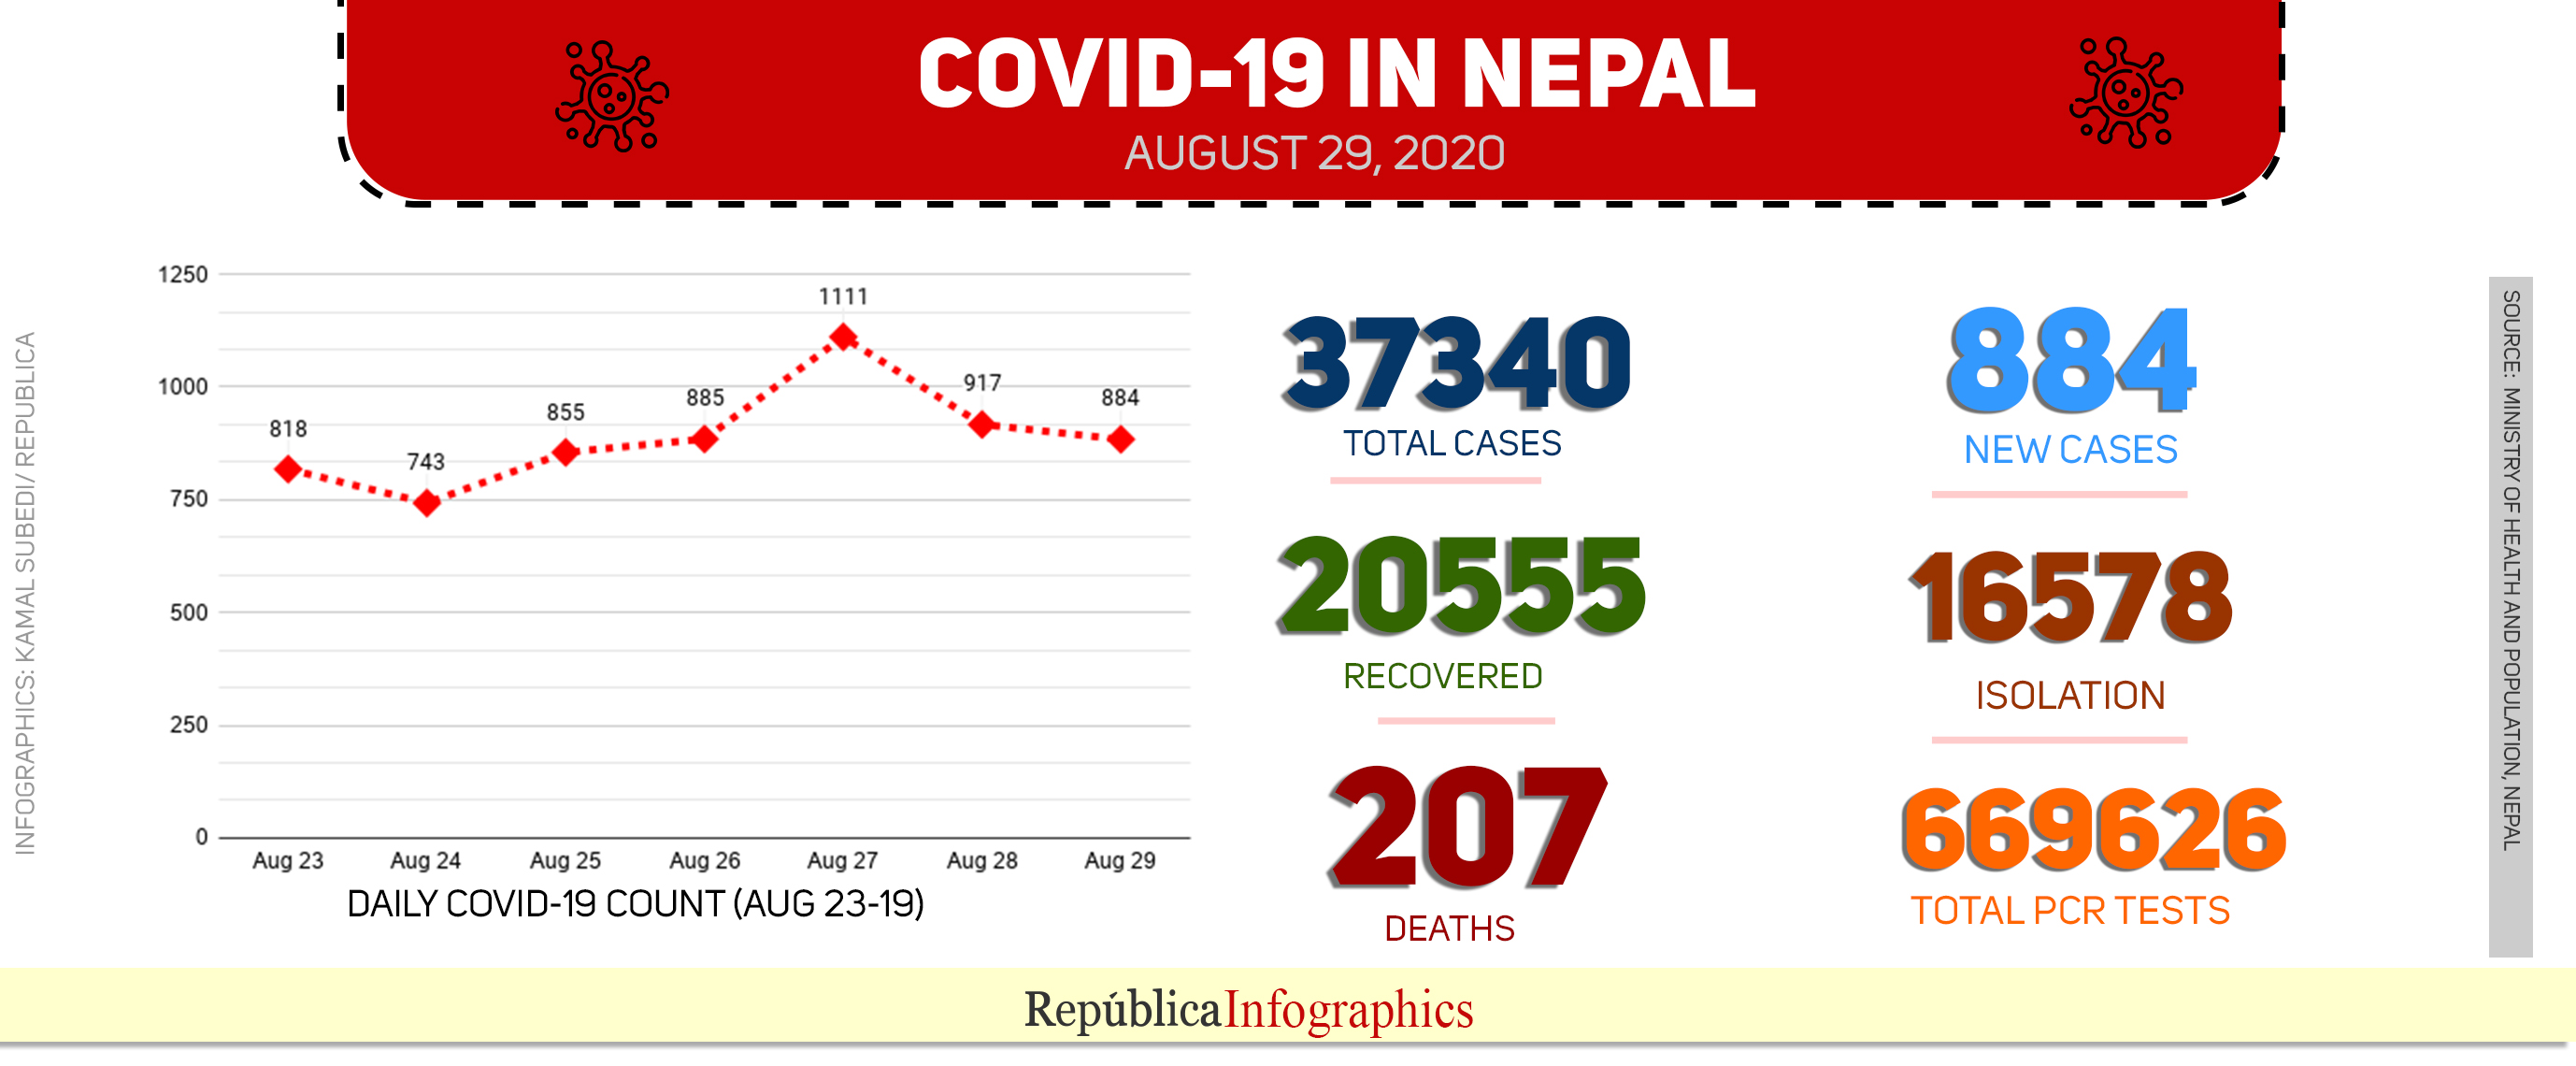 Health ministry reports 884 new cases in past 24 hours, taking national COVID-19 tally to 37,340